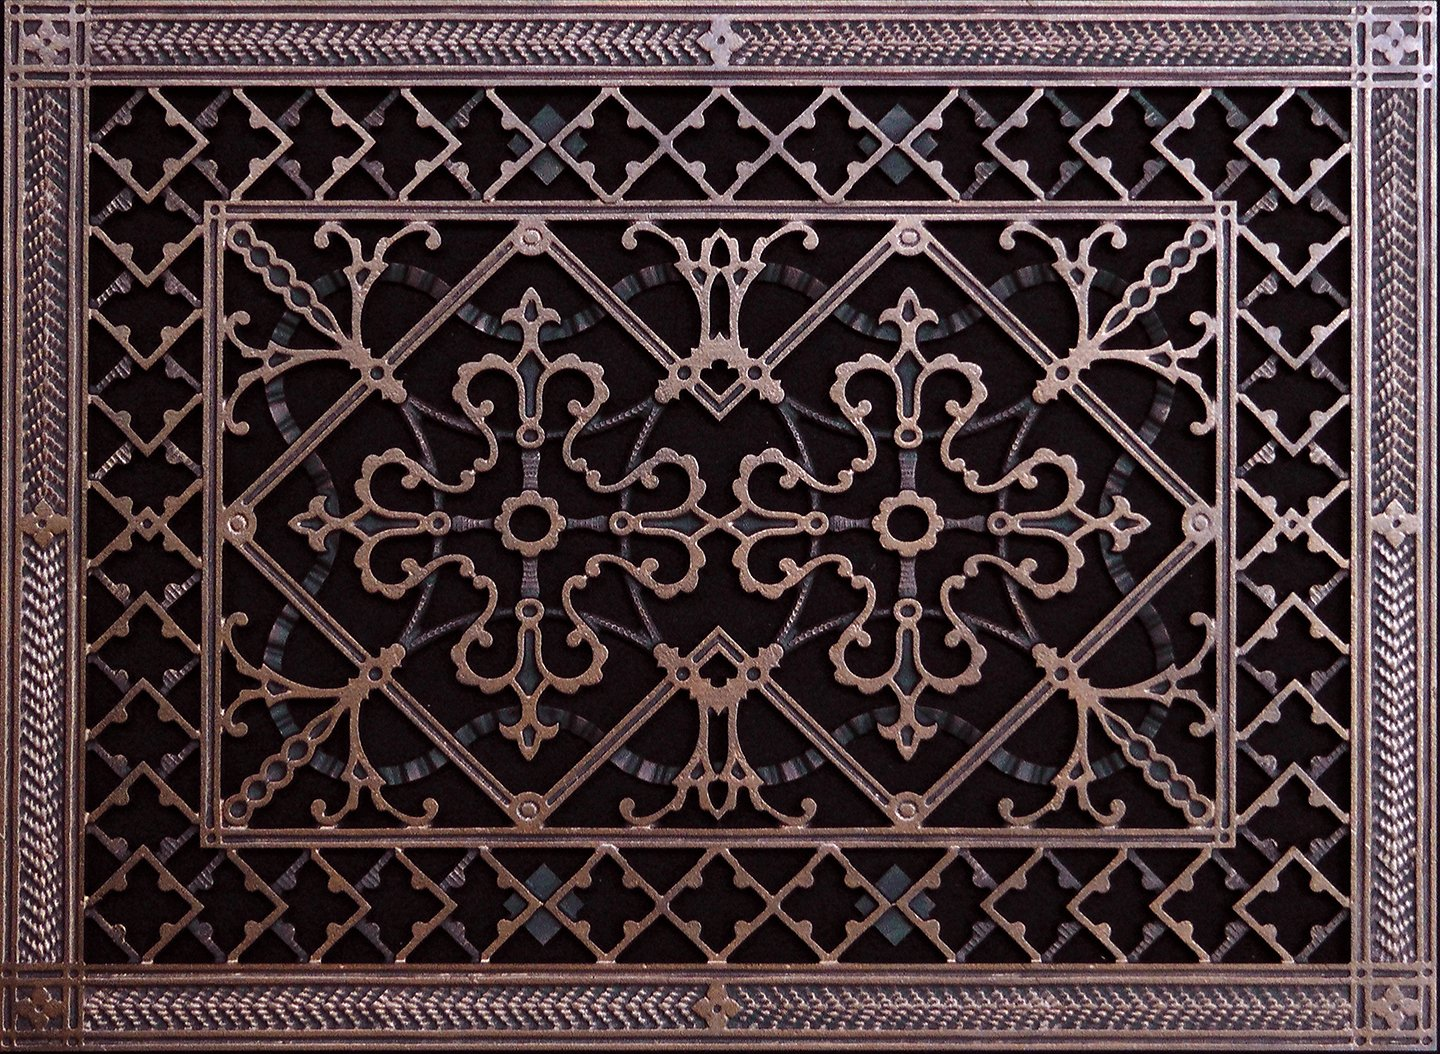 """Decorative Grille, Vent Cover, or Return Register. Made of Urethane Resin to fit over a 14''x20'' duct or opening. Total size of vent is 16""""x22''x3/8'', for wall and ceiling grilles (not for floor use)."""